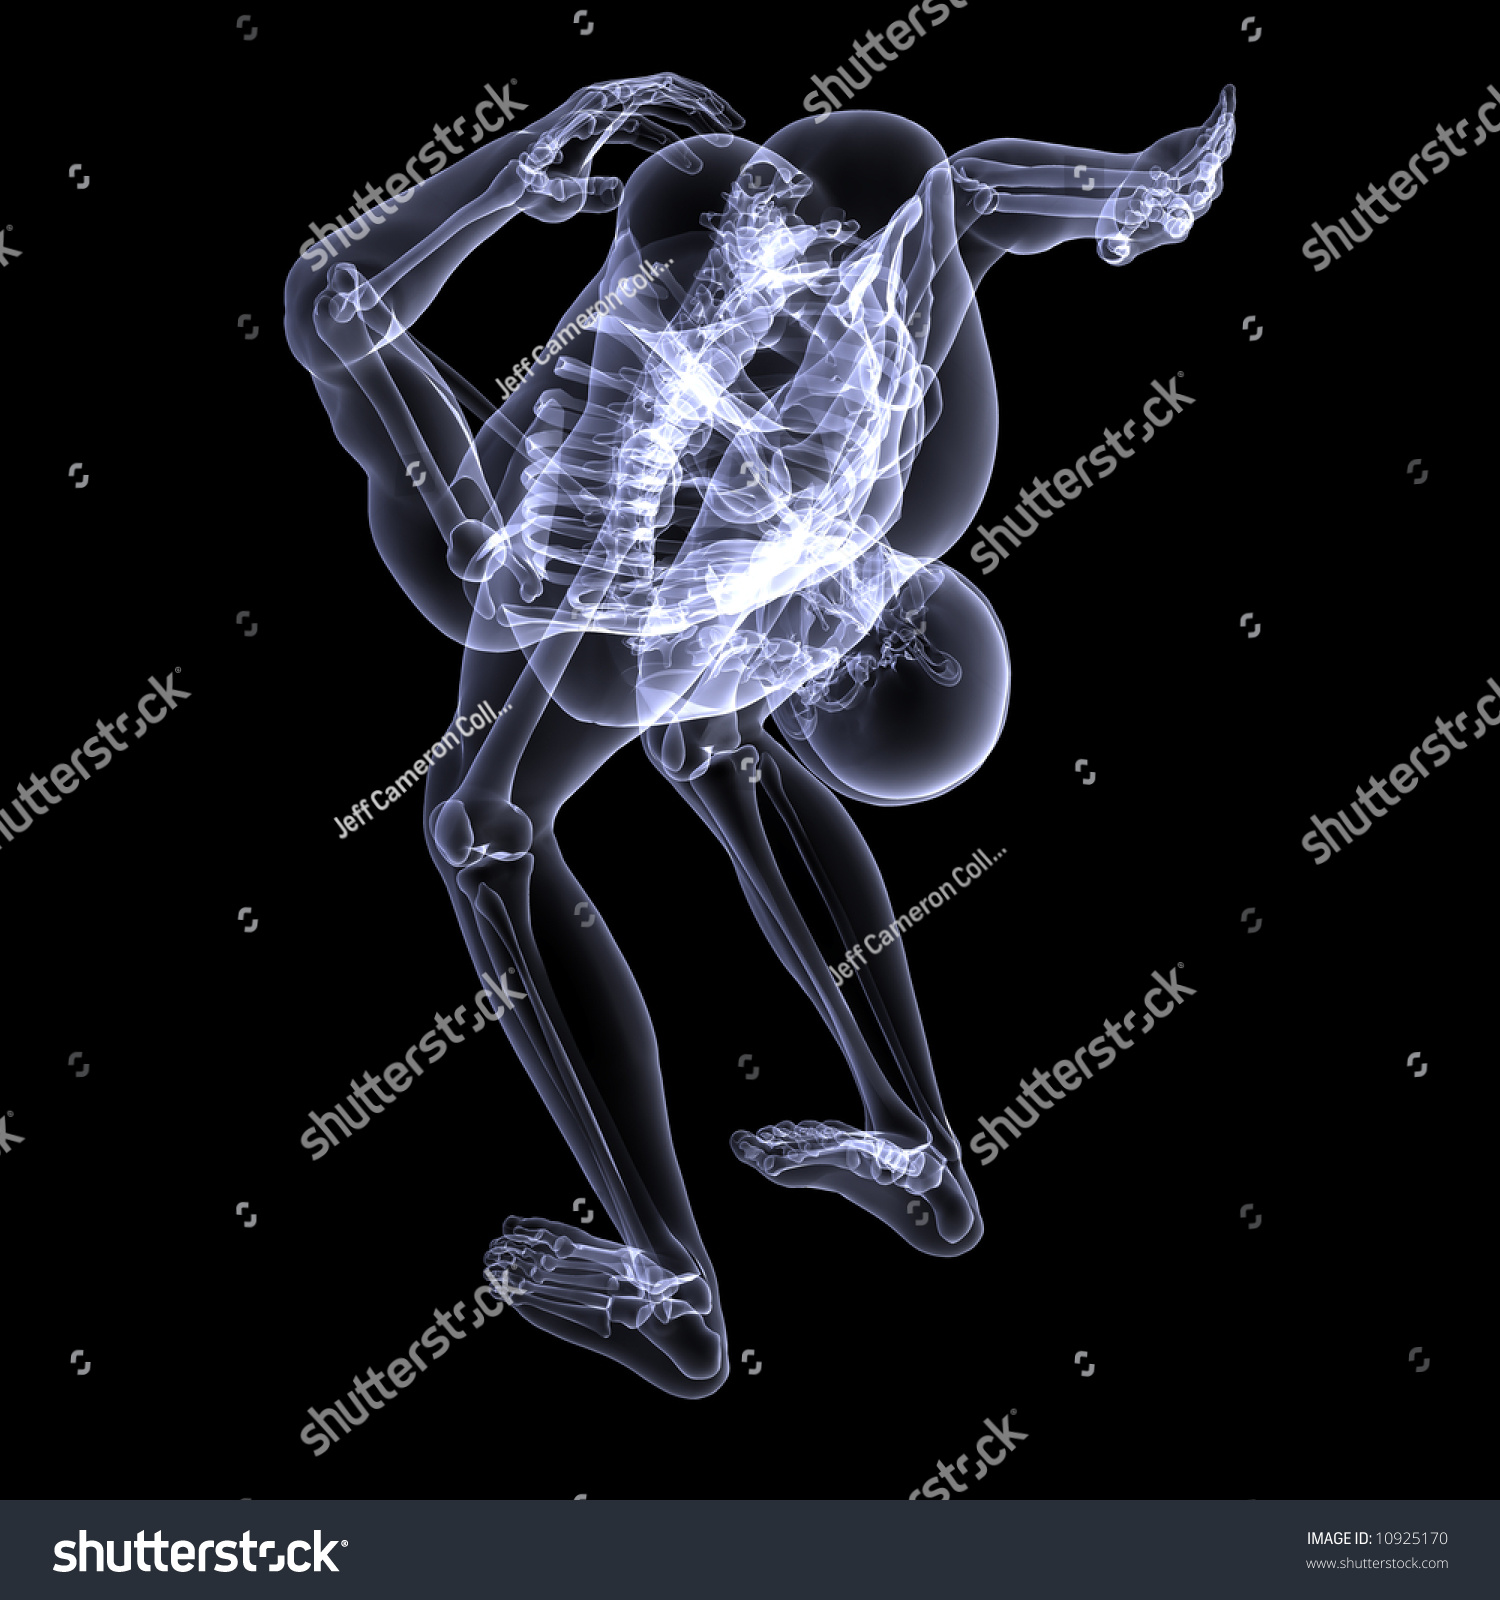 X-Ray of a male skeleton kissing his ass goodbye. Isolated on a black